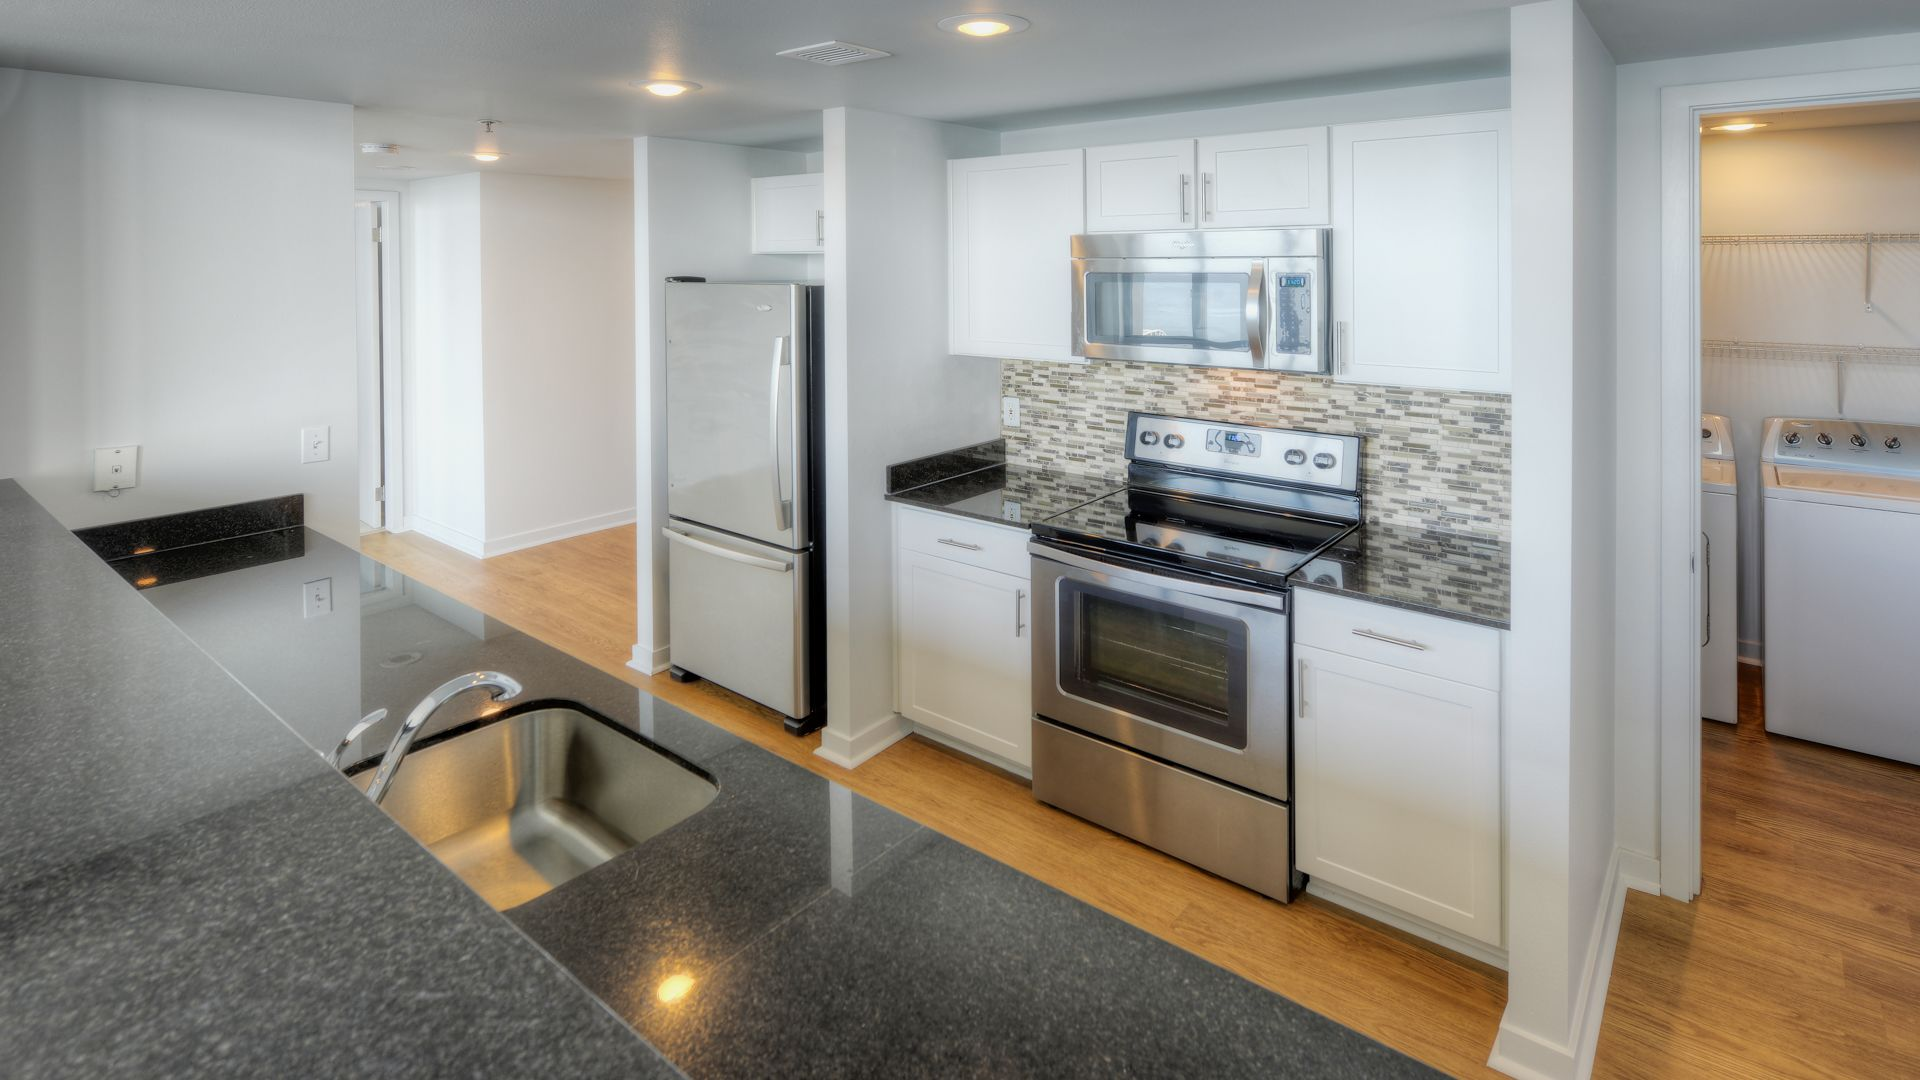 Two Bedroom Apartment Seattle Crowdbuild For